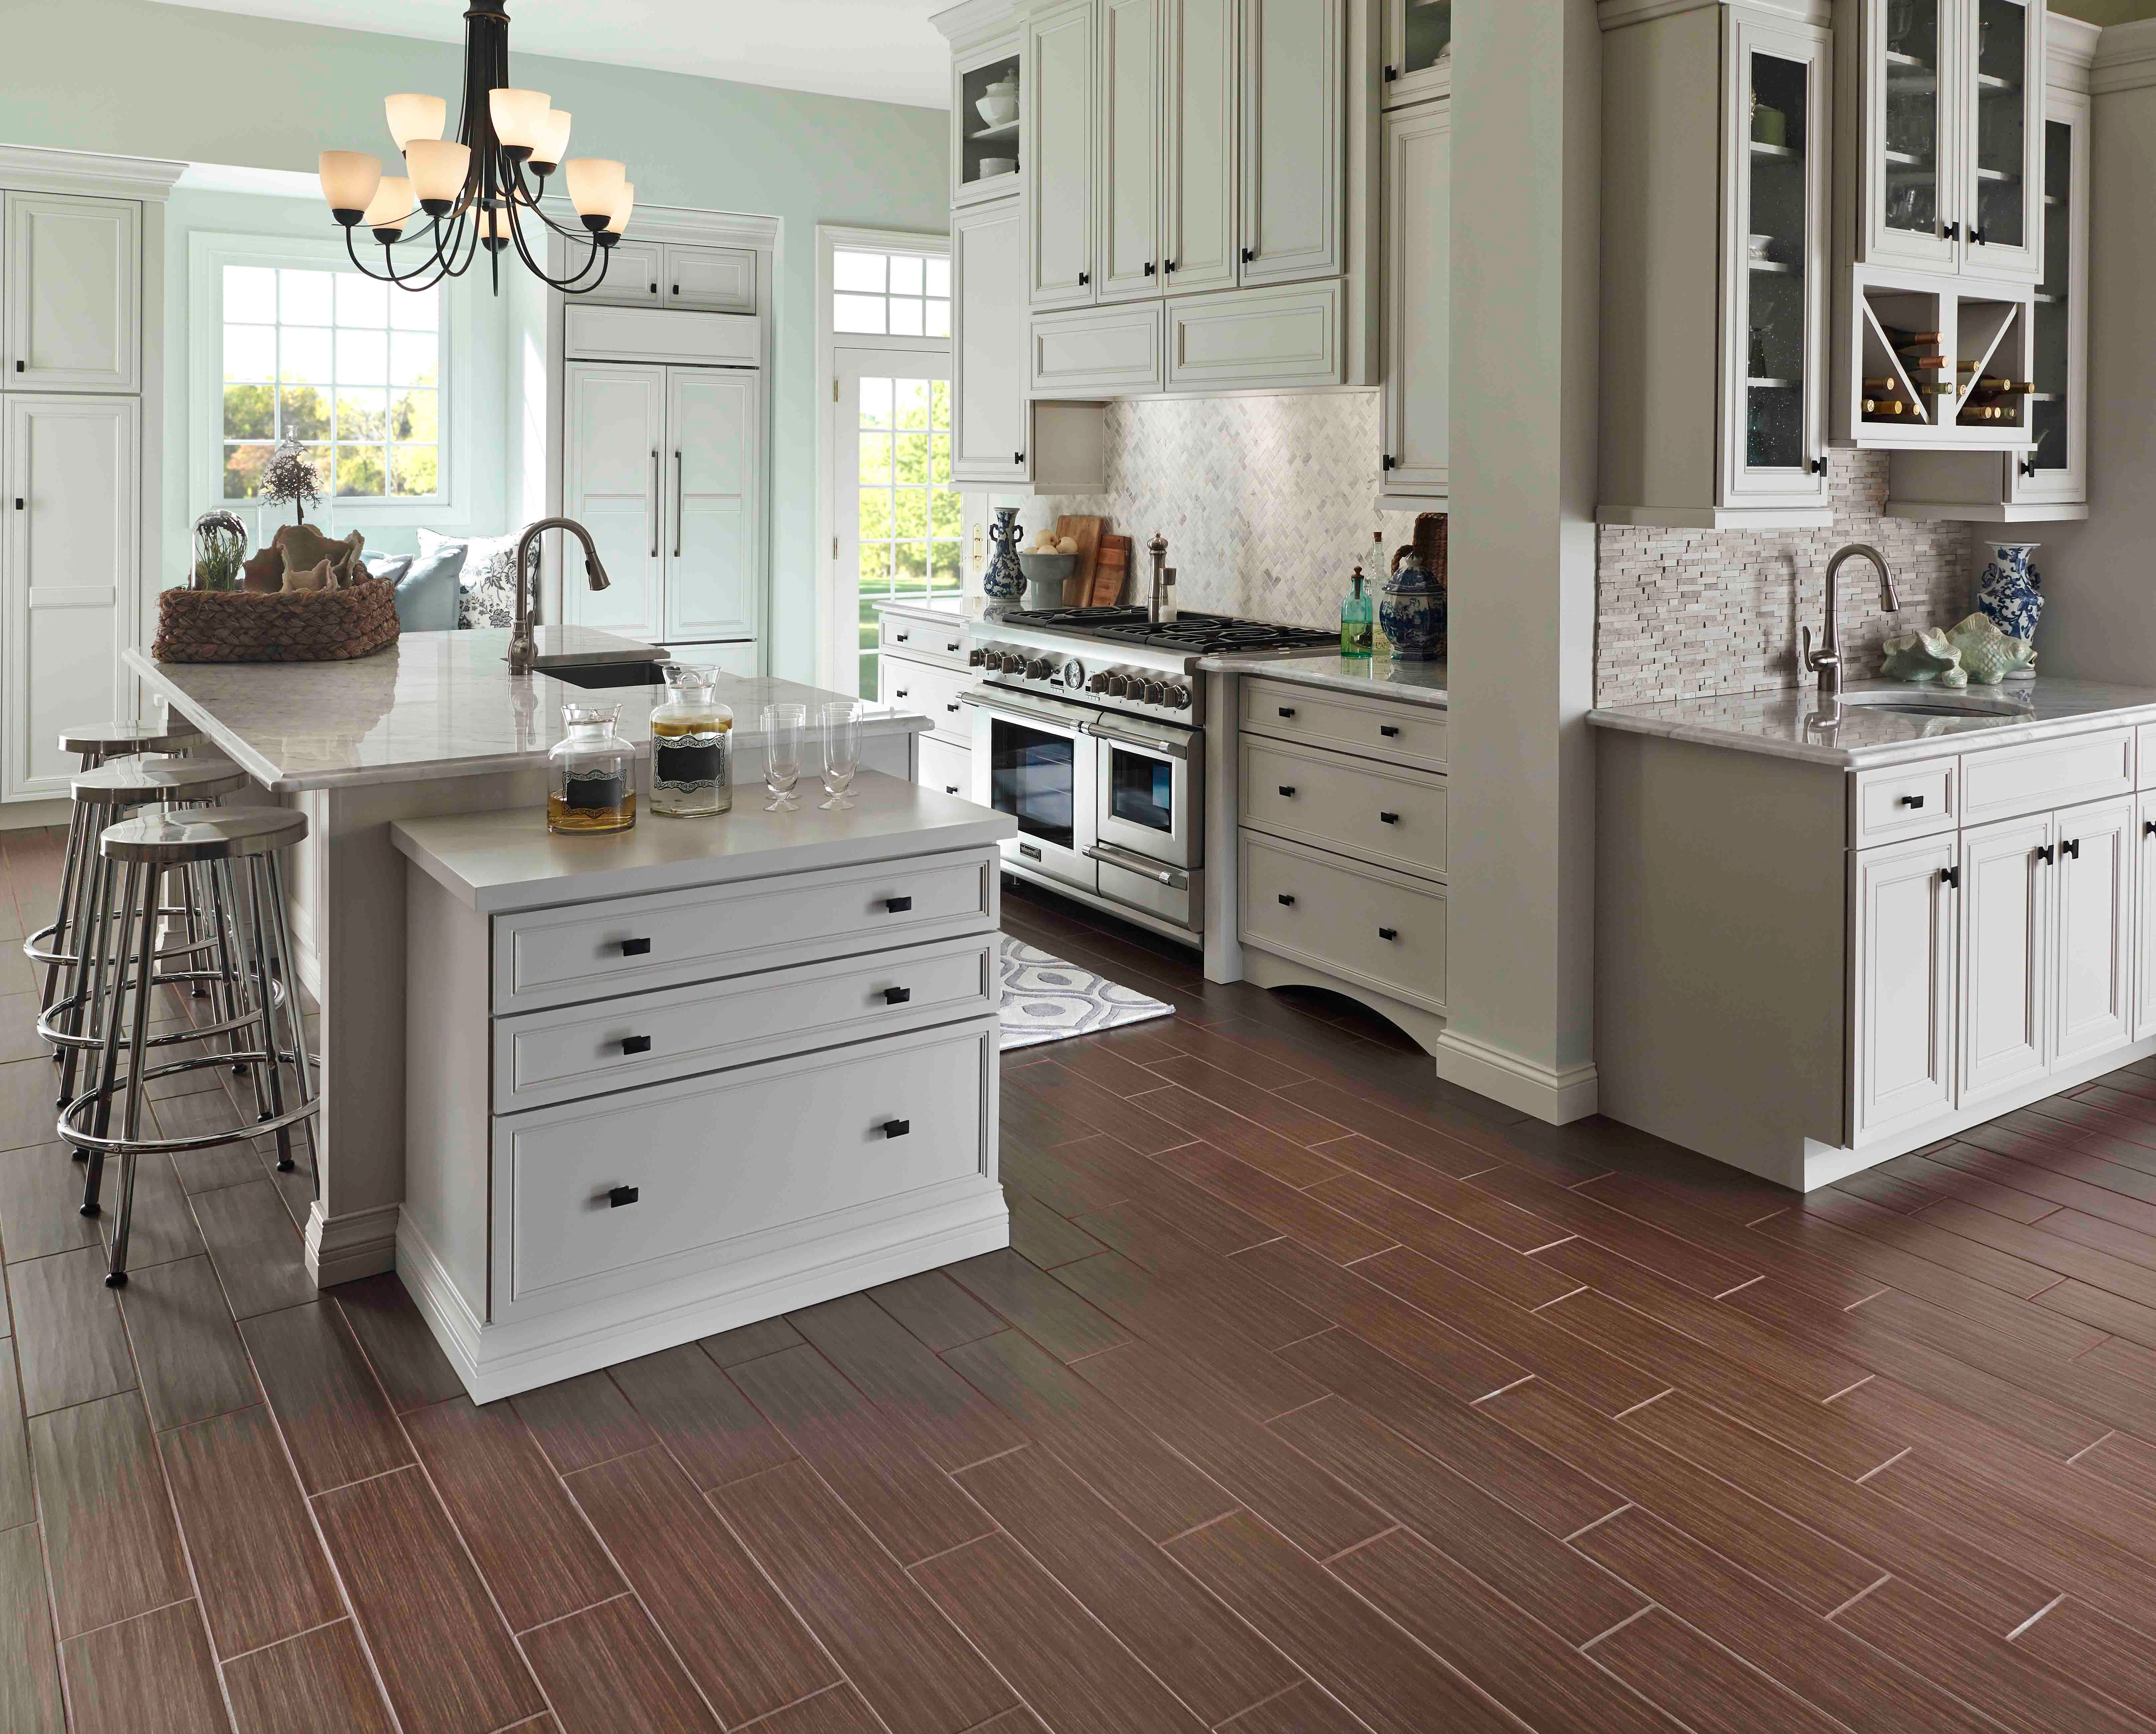 2015 Hot Kitchen Trends – Part 1: Cabinets &